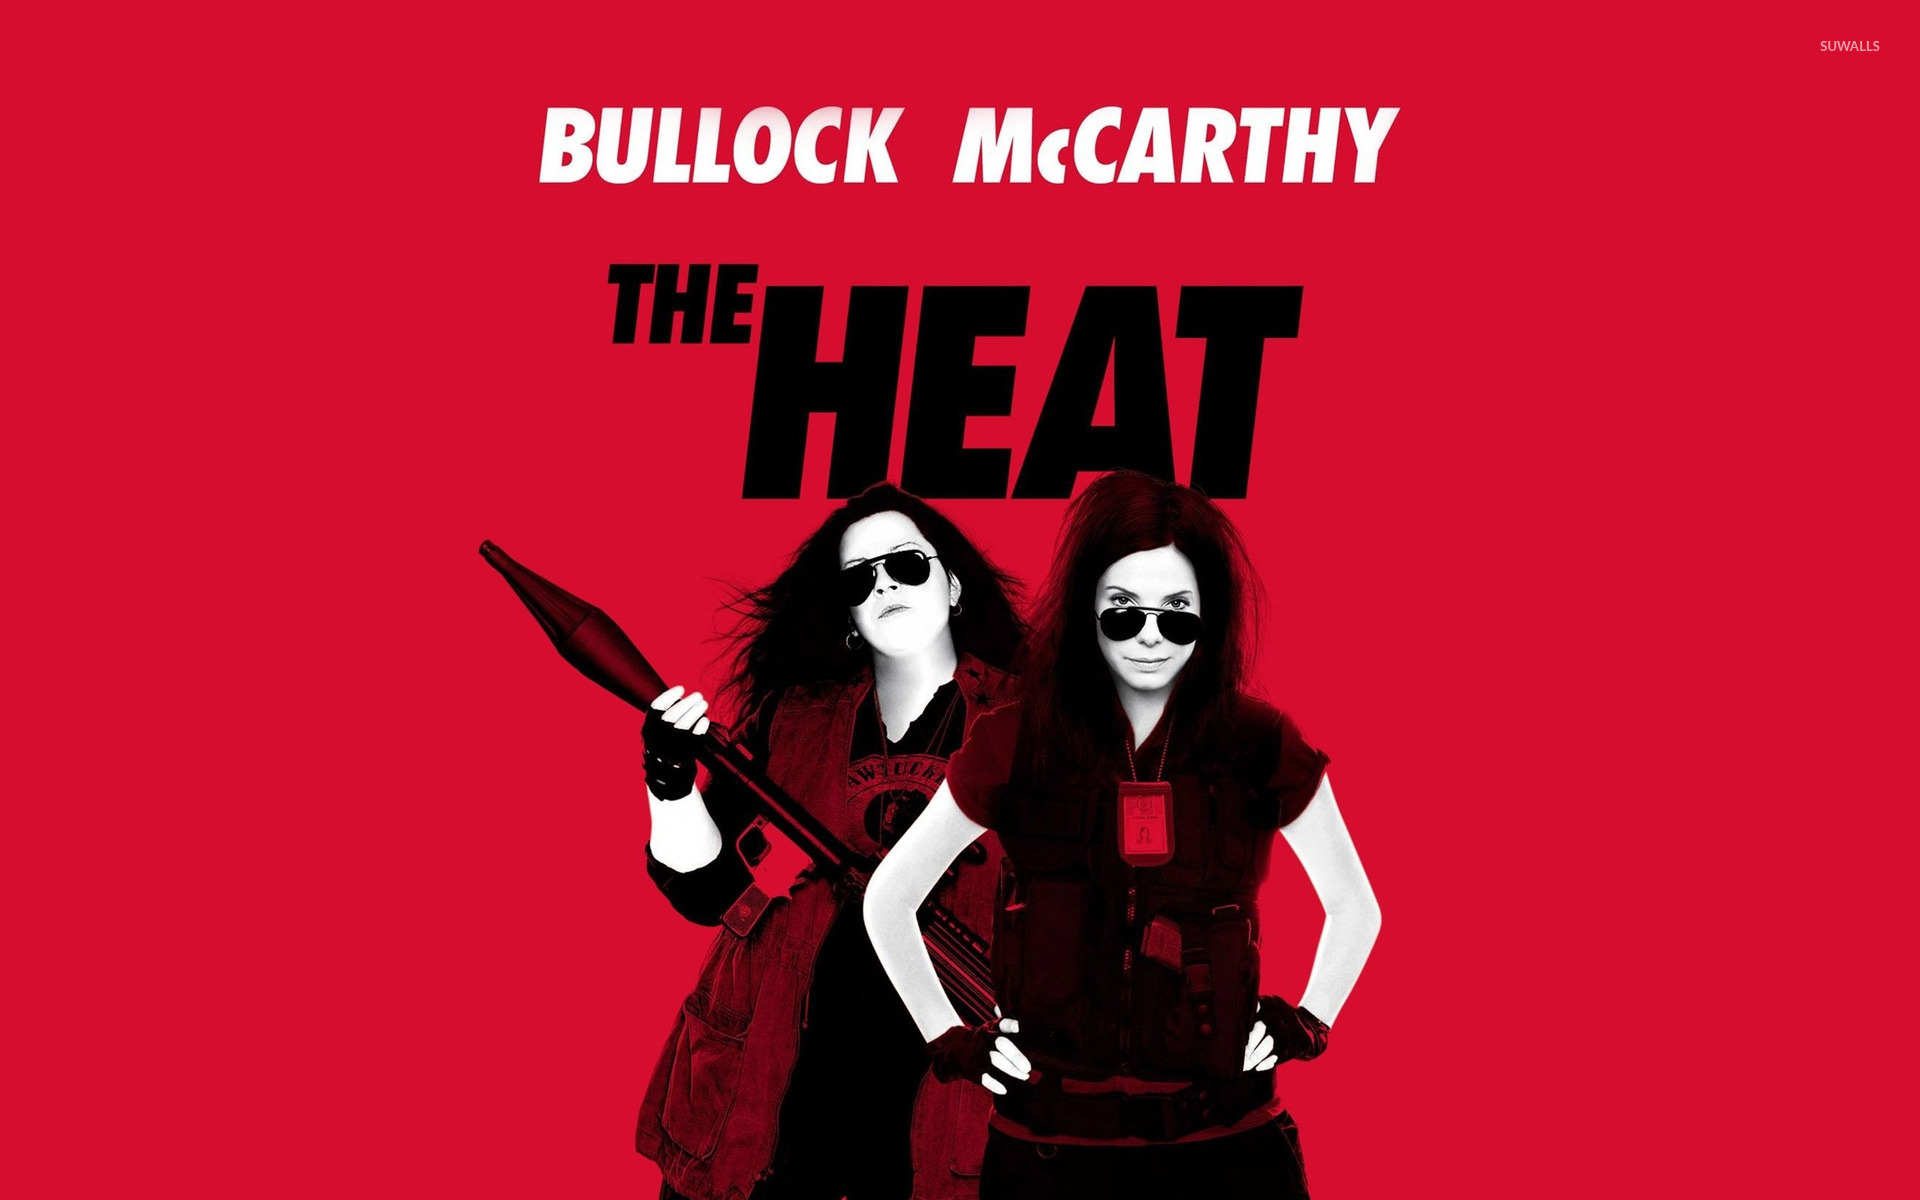 The Heat wallpaper   Movie wallpapers   20732 1920x1200